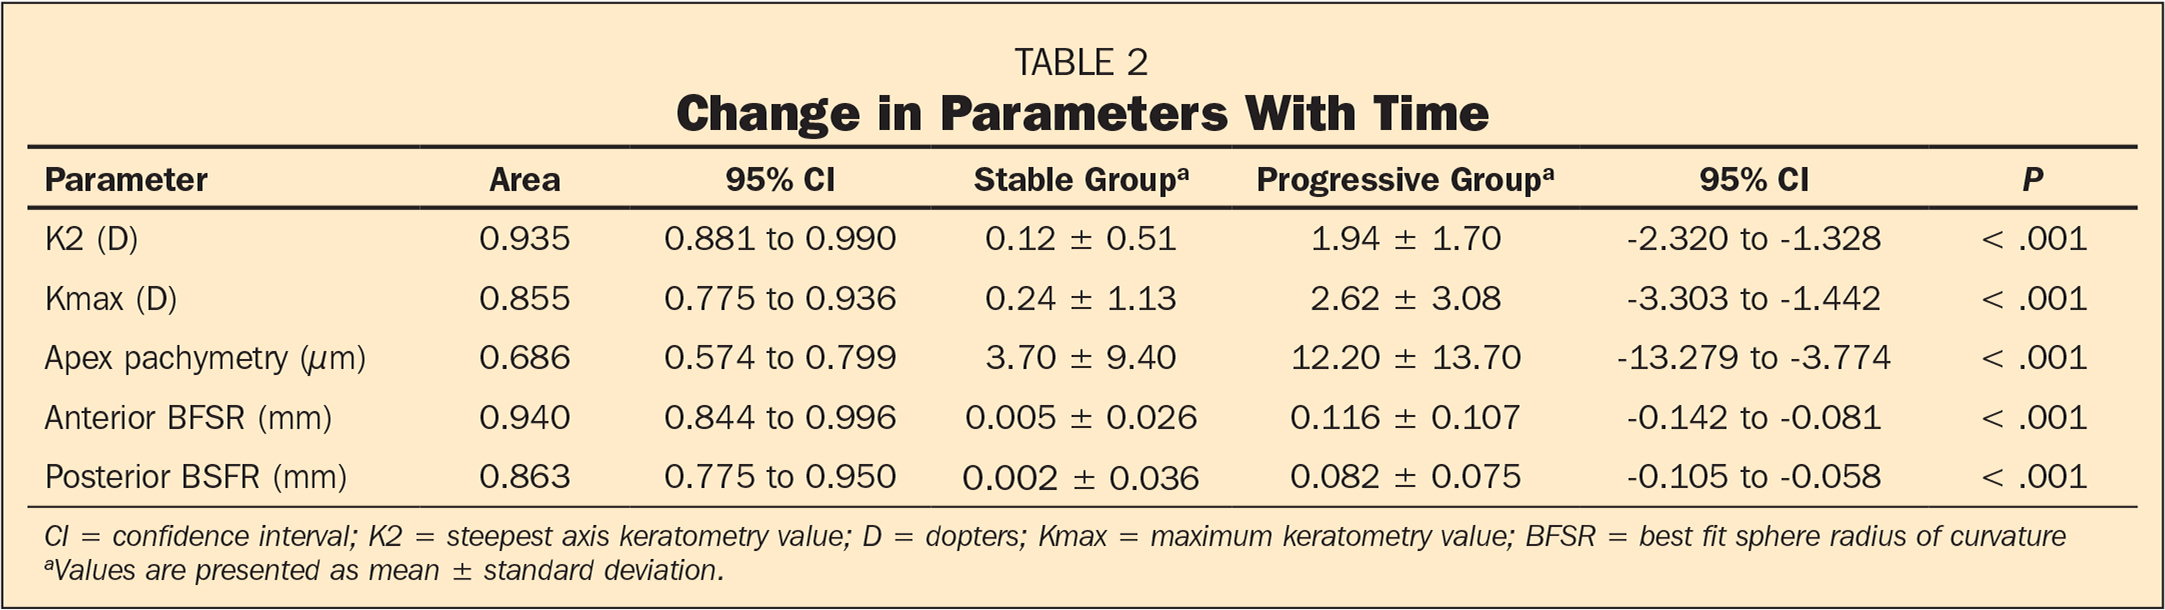 Change in Parameters With Time